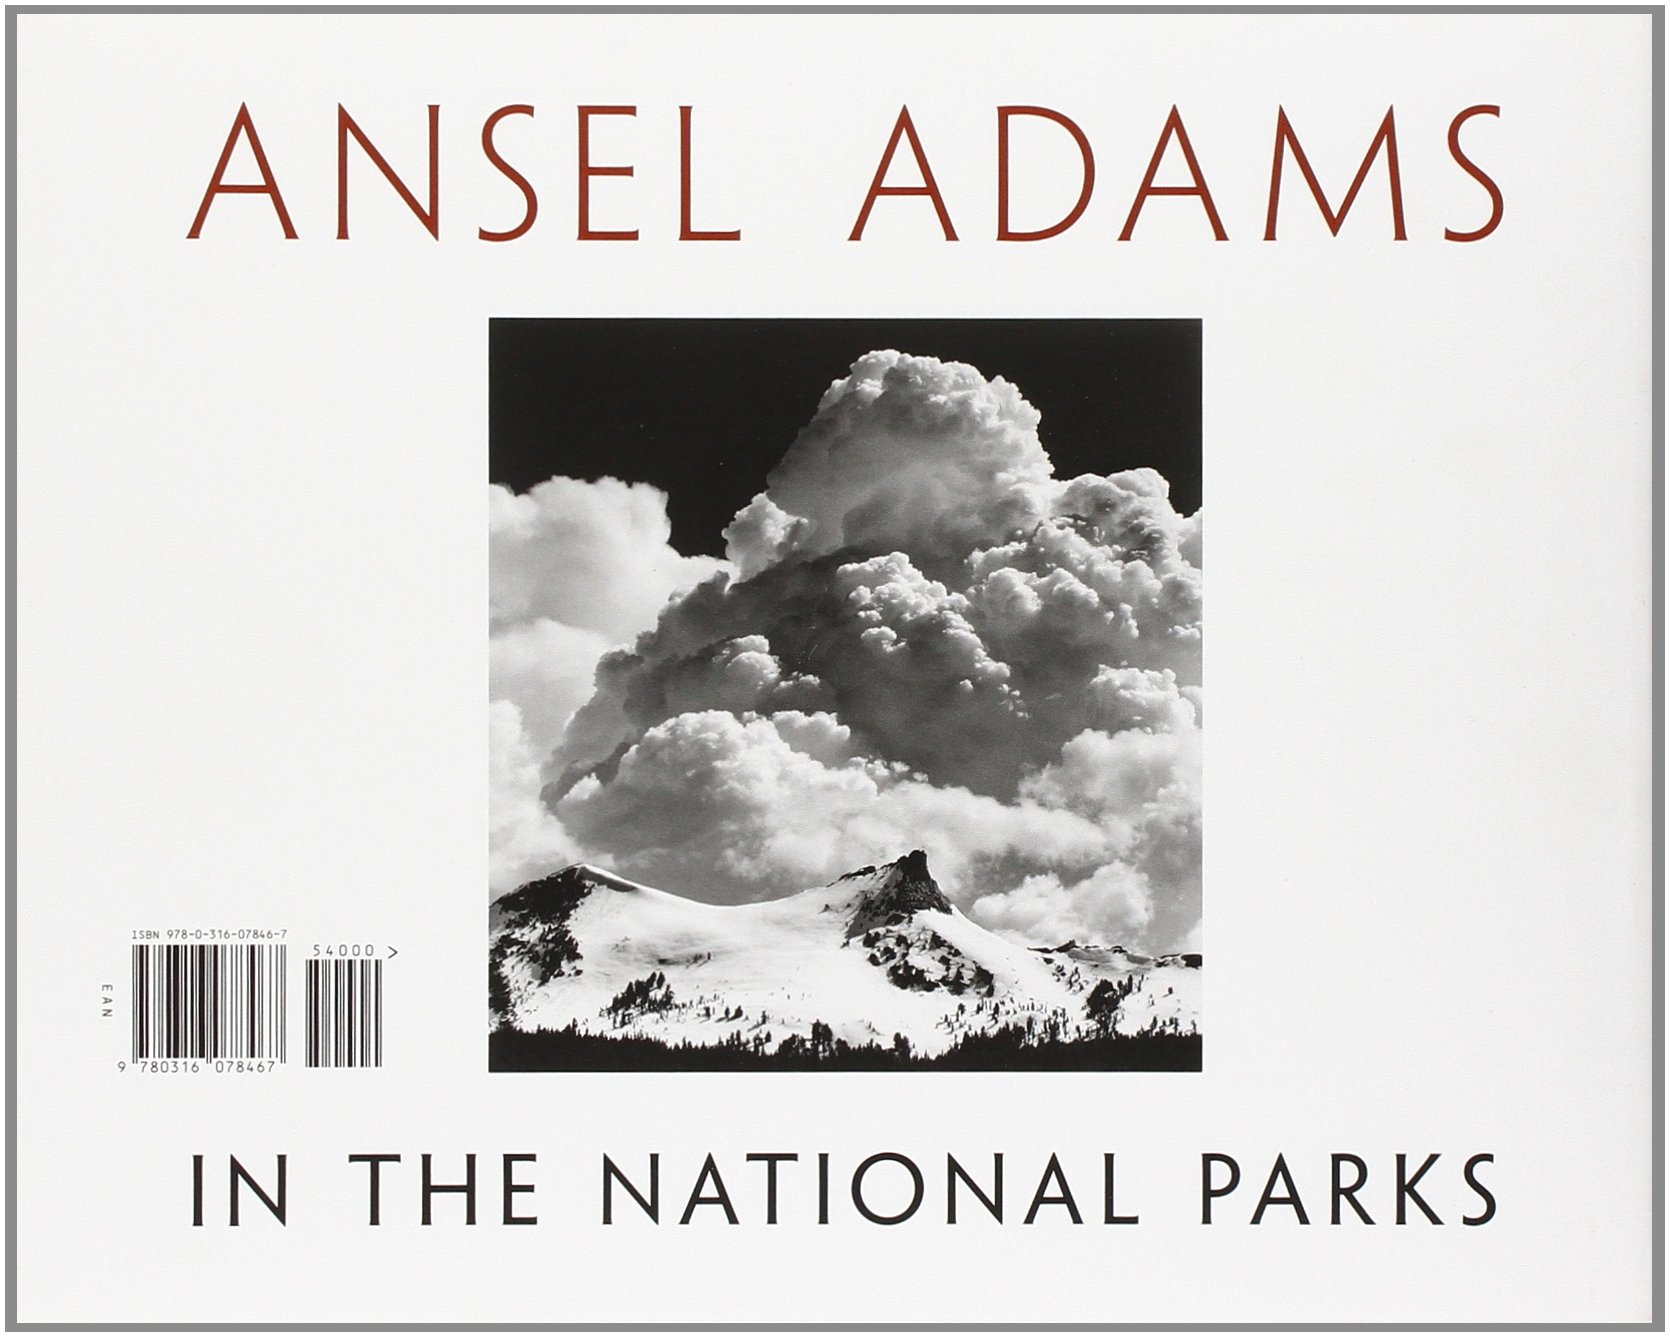 Amazon Ansel Adams in the National Parks graphs from